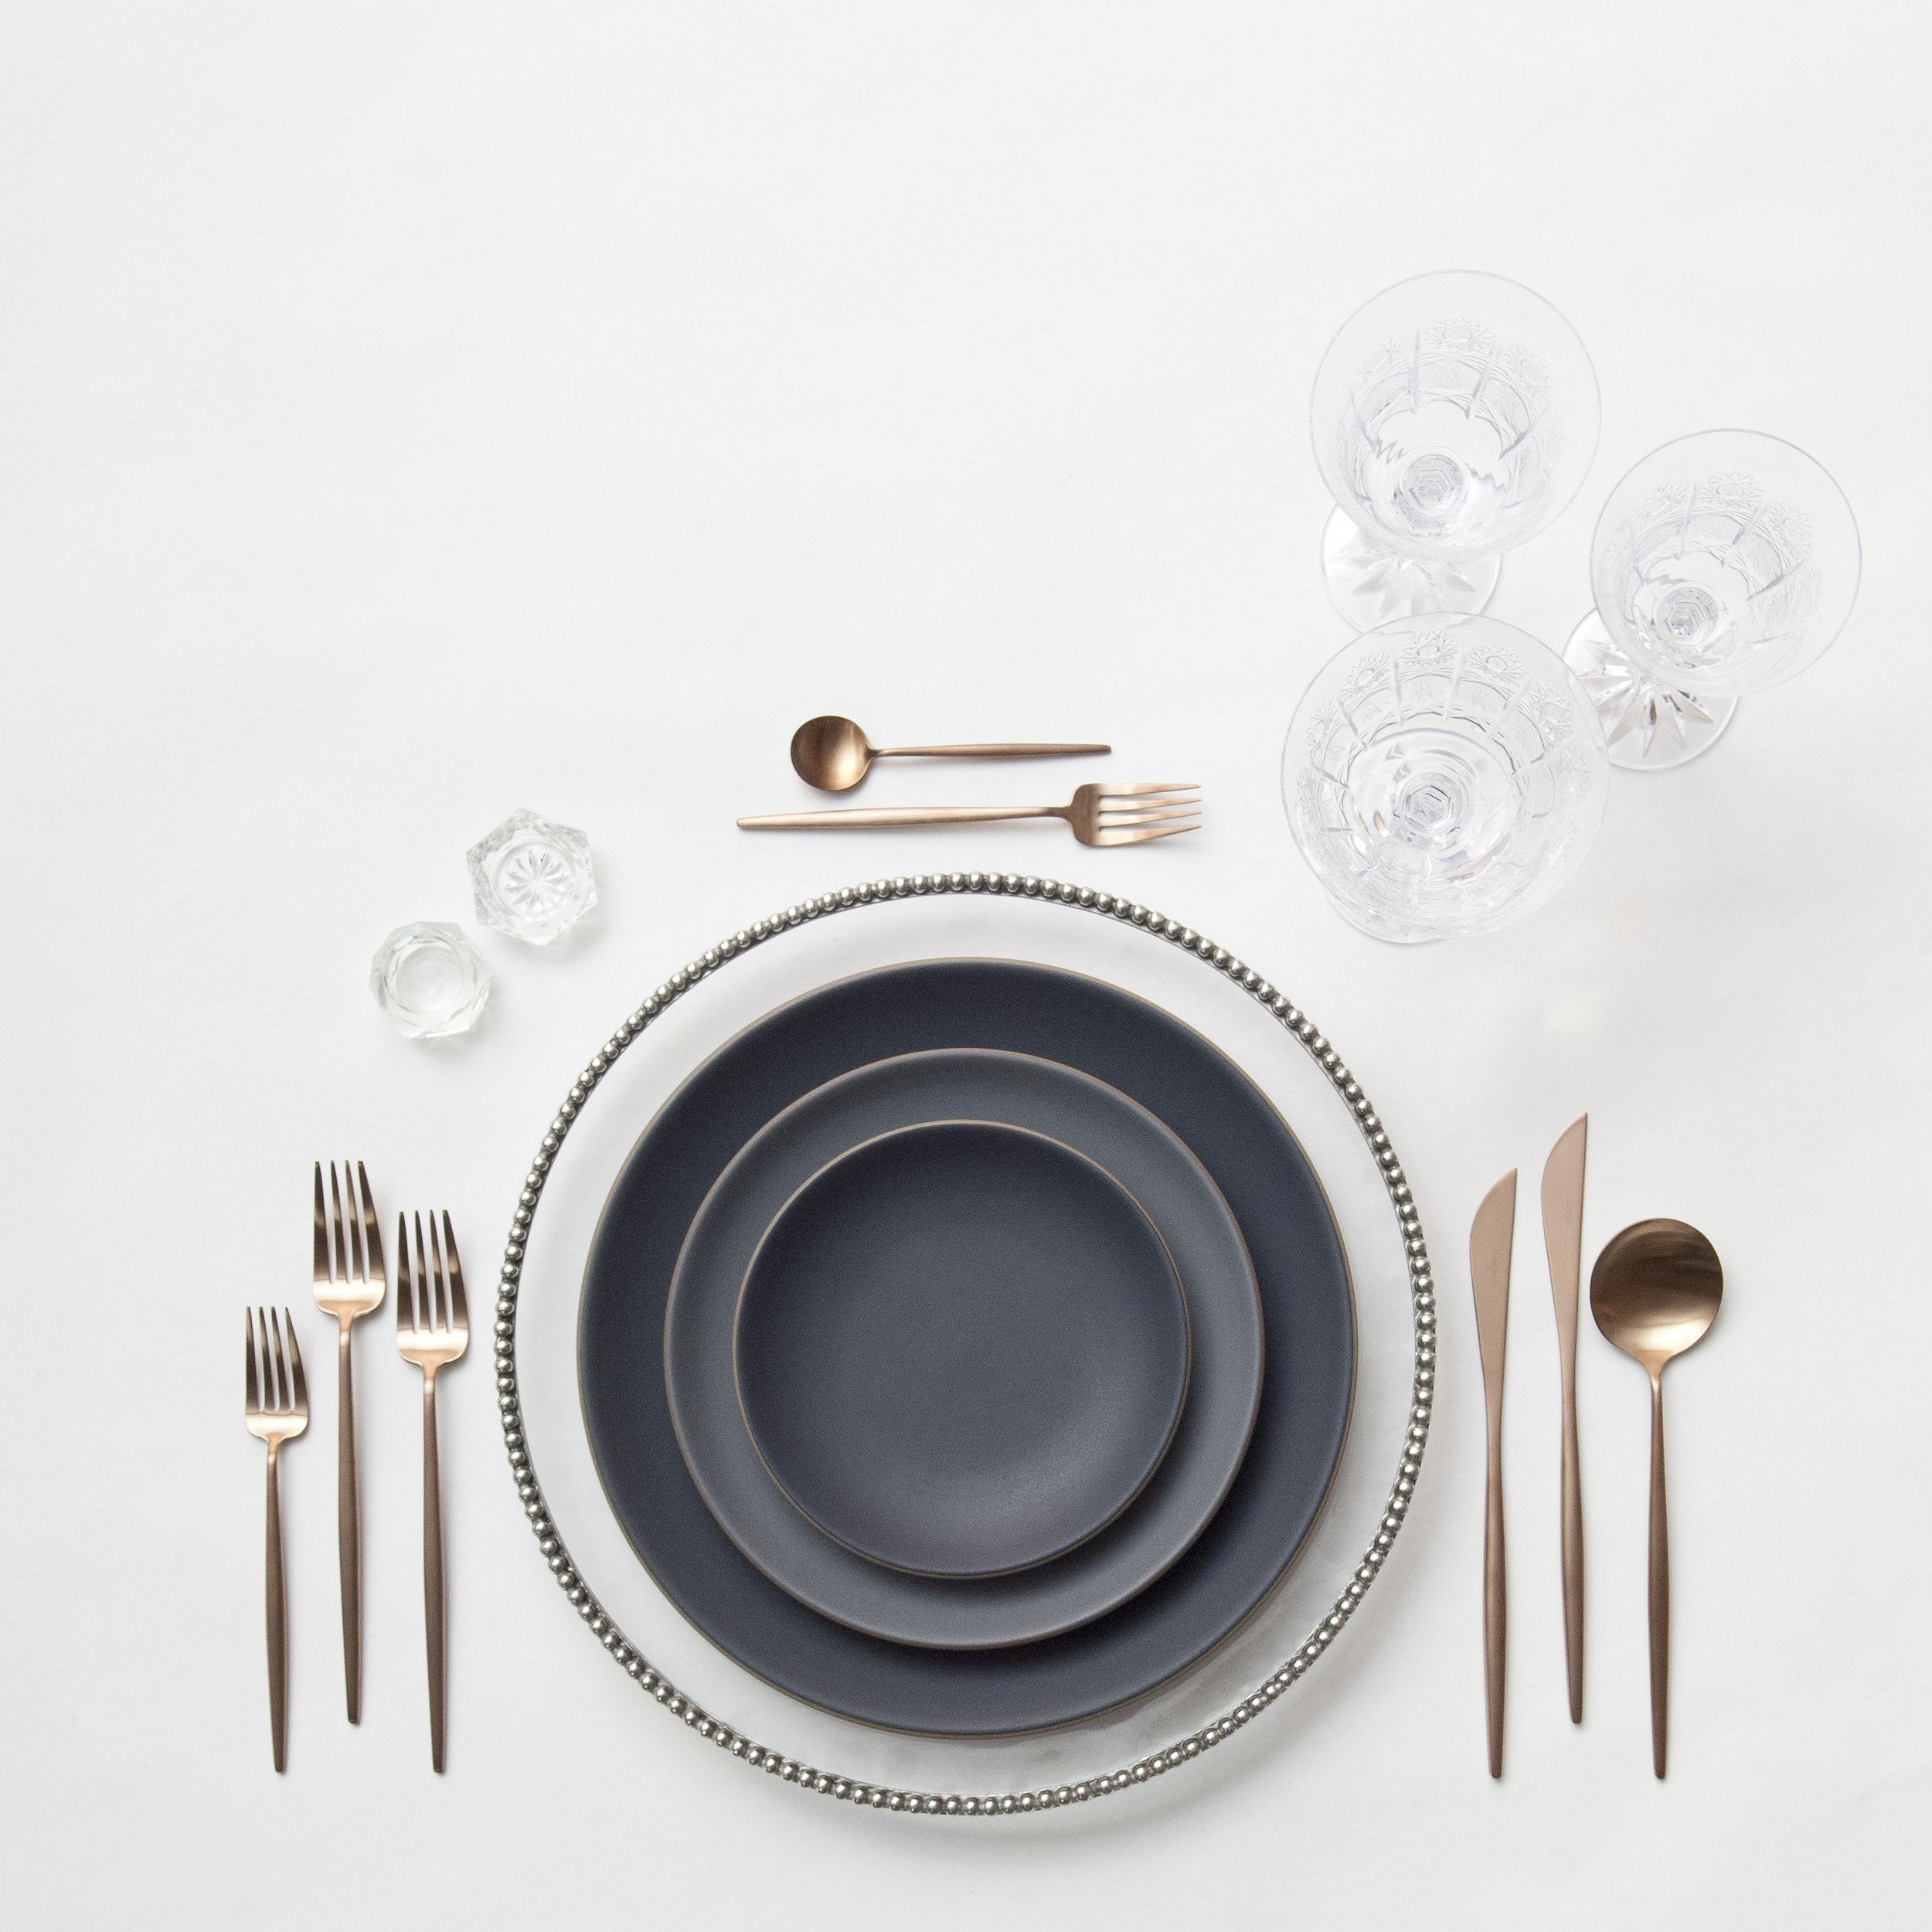 RENT: Pavé Glass Chargers in Pewter + Heath Ceramics in Indigo/Slate + Moon Flatware in Brushed Rose Gold + Czech Crystal Stemware + Antique Crystal Salt Cellars  SHOP:Moon Flatware in Brushed Rose Gold